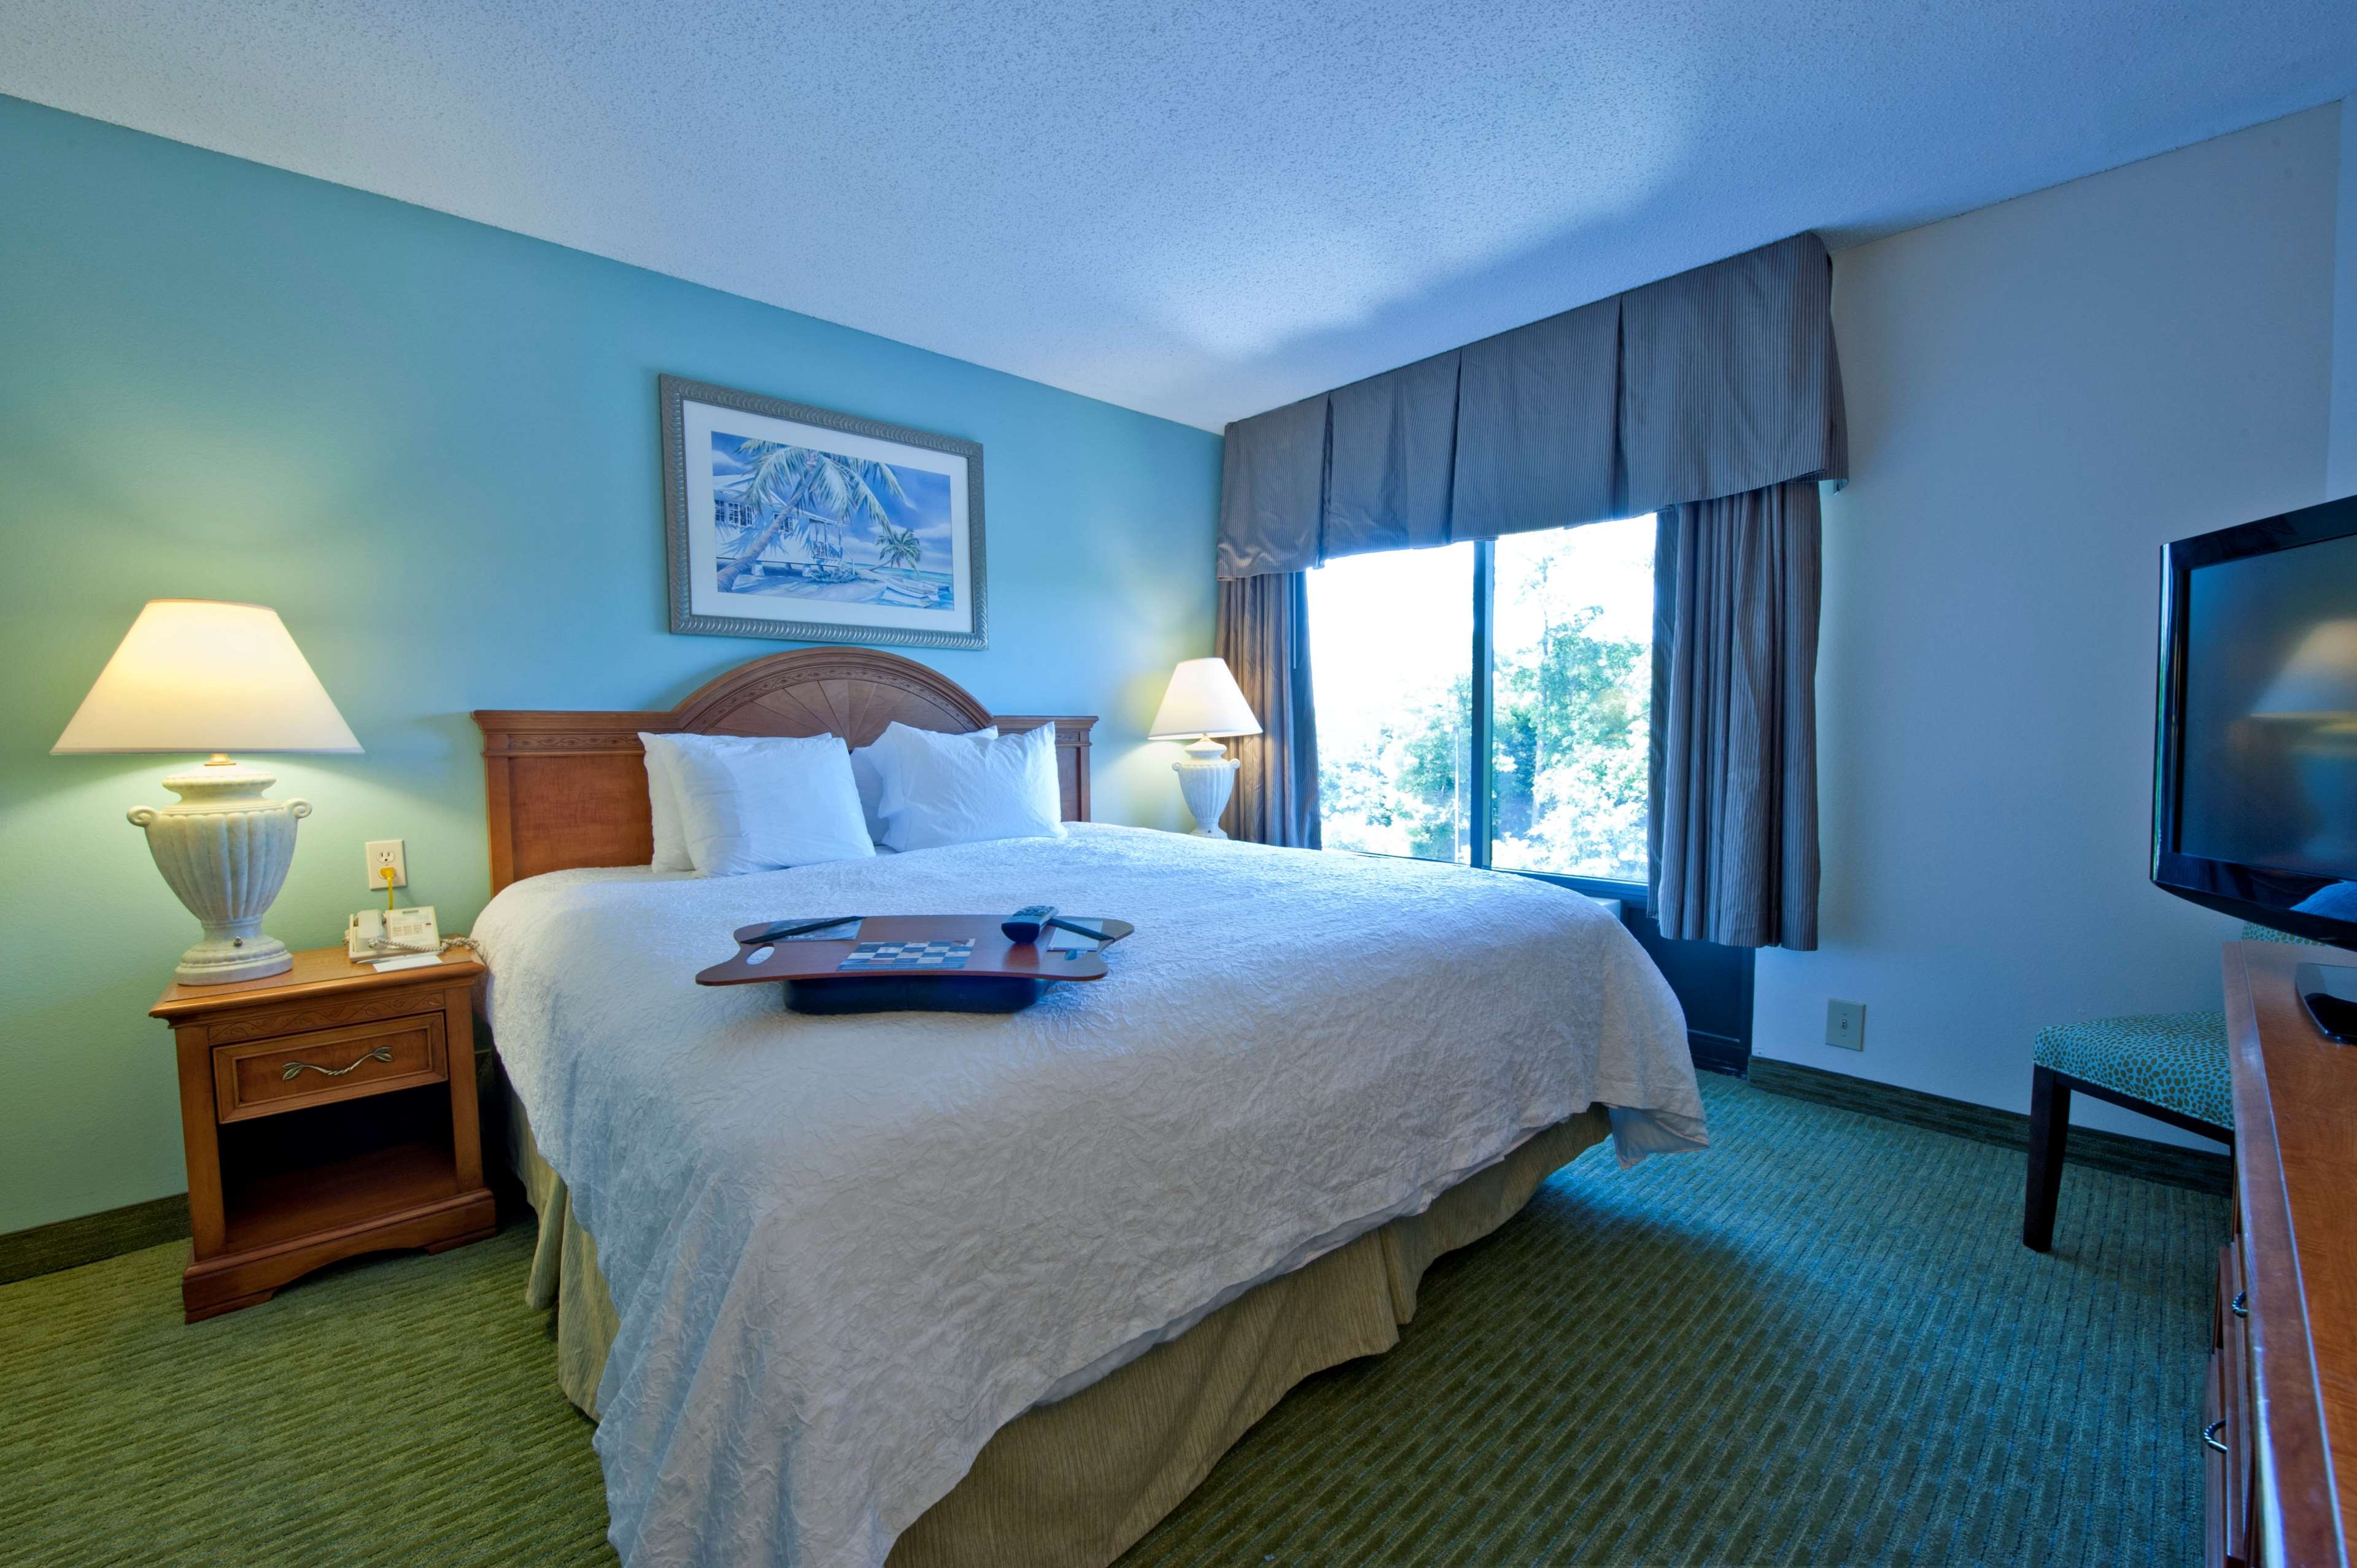 Hampton Inn & Suites Wilmington/Wrightsville Beach image 35